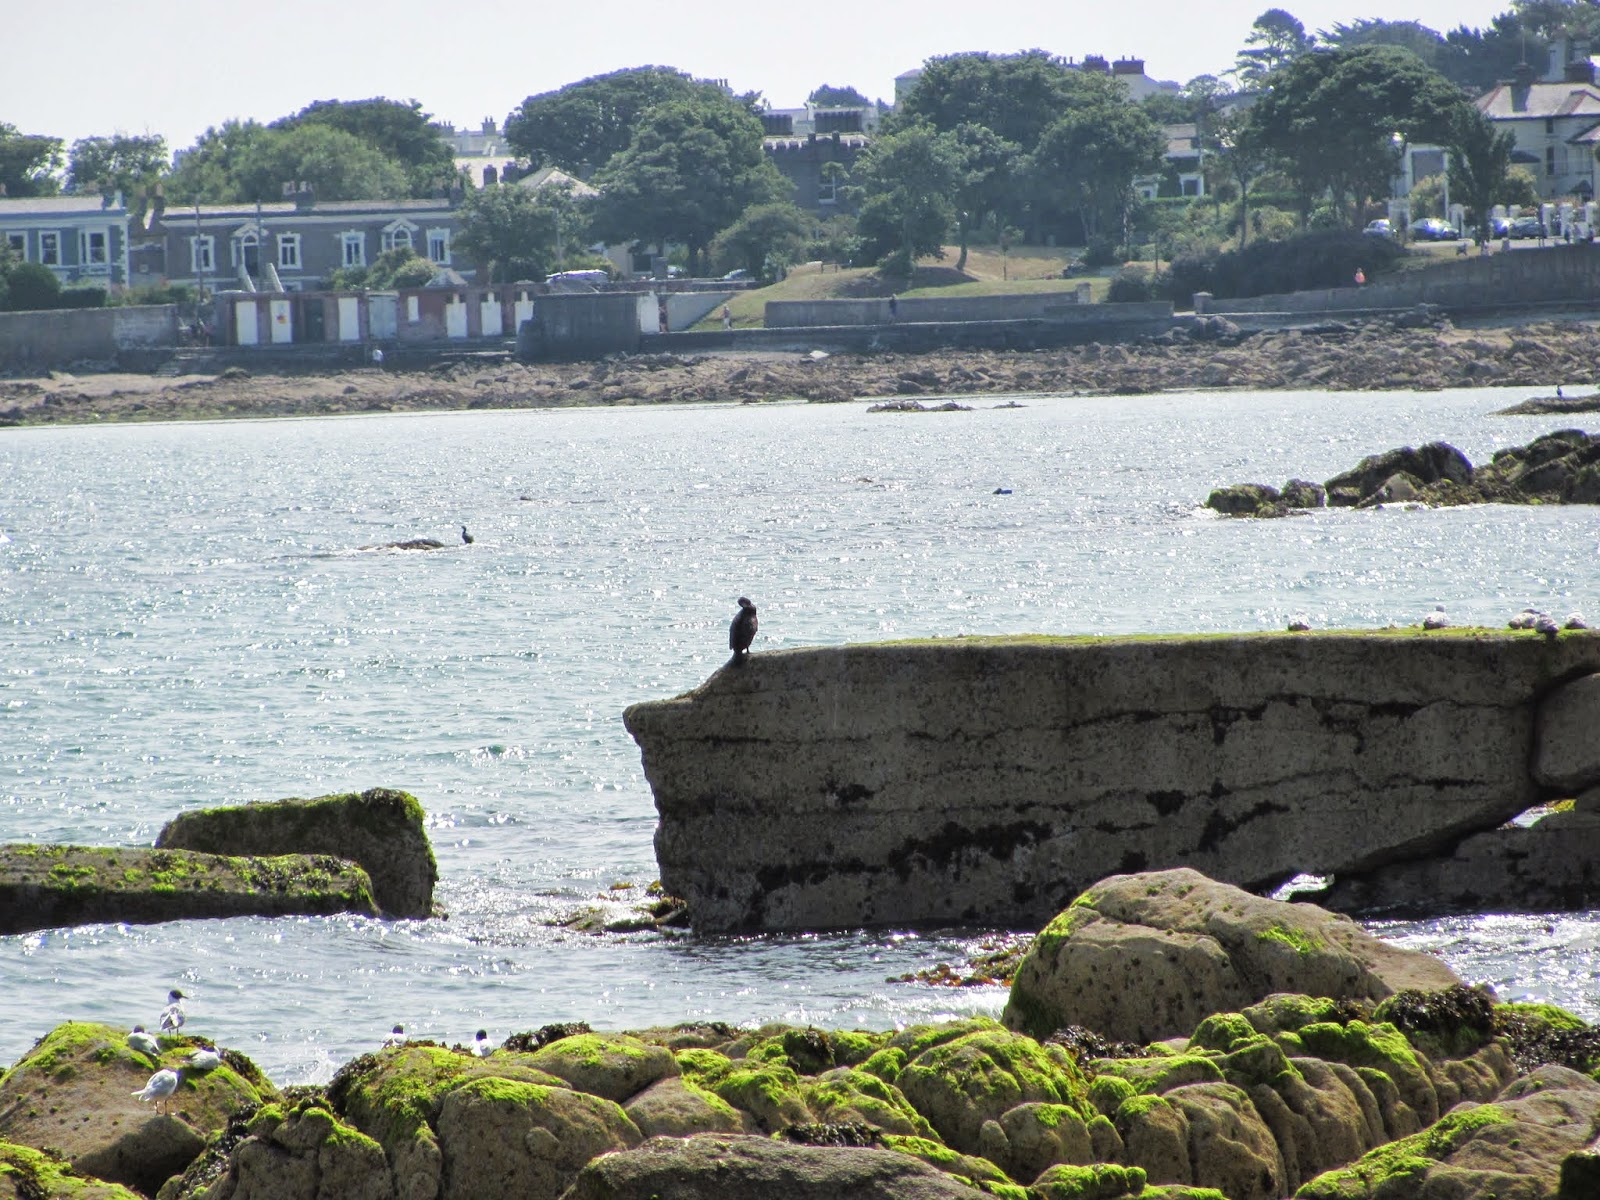 A seabird rests on a rock wall on the shoreline in Dun Laoghaire, Co. Dublin, Ireland